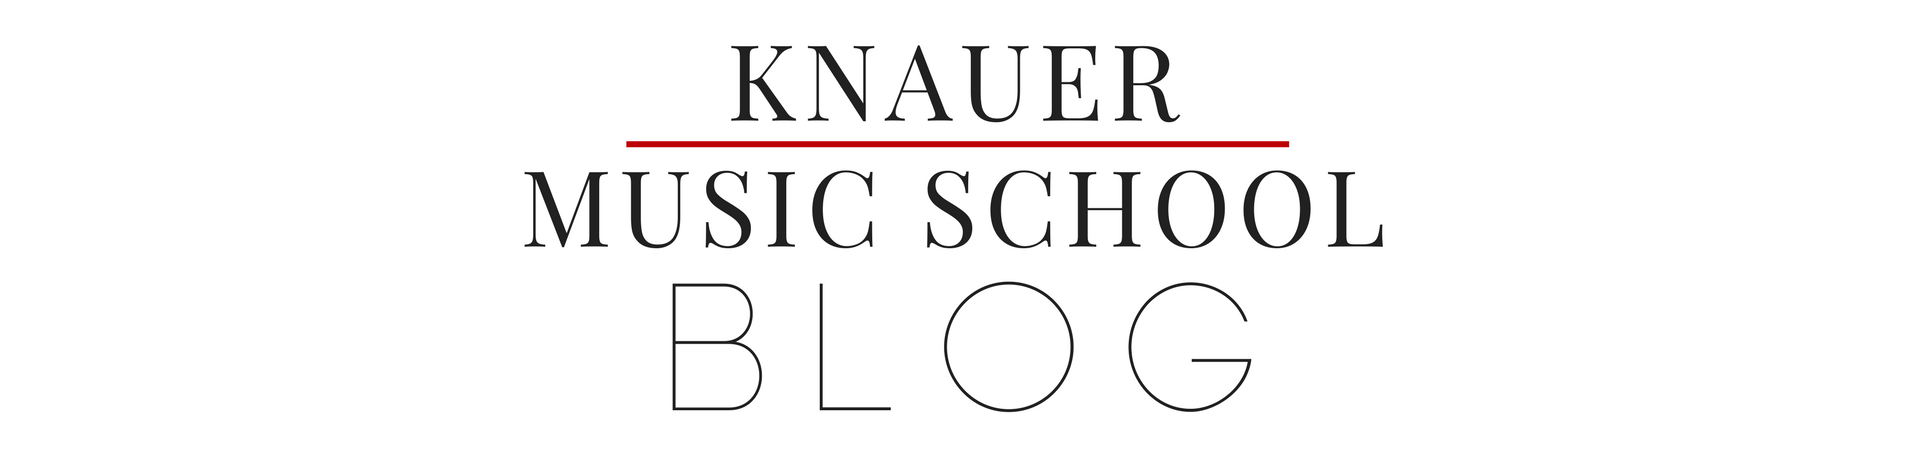 Knauer Music School